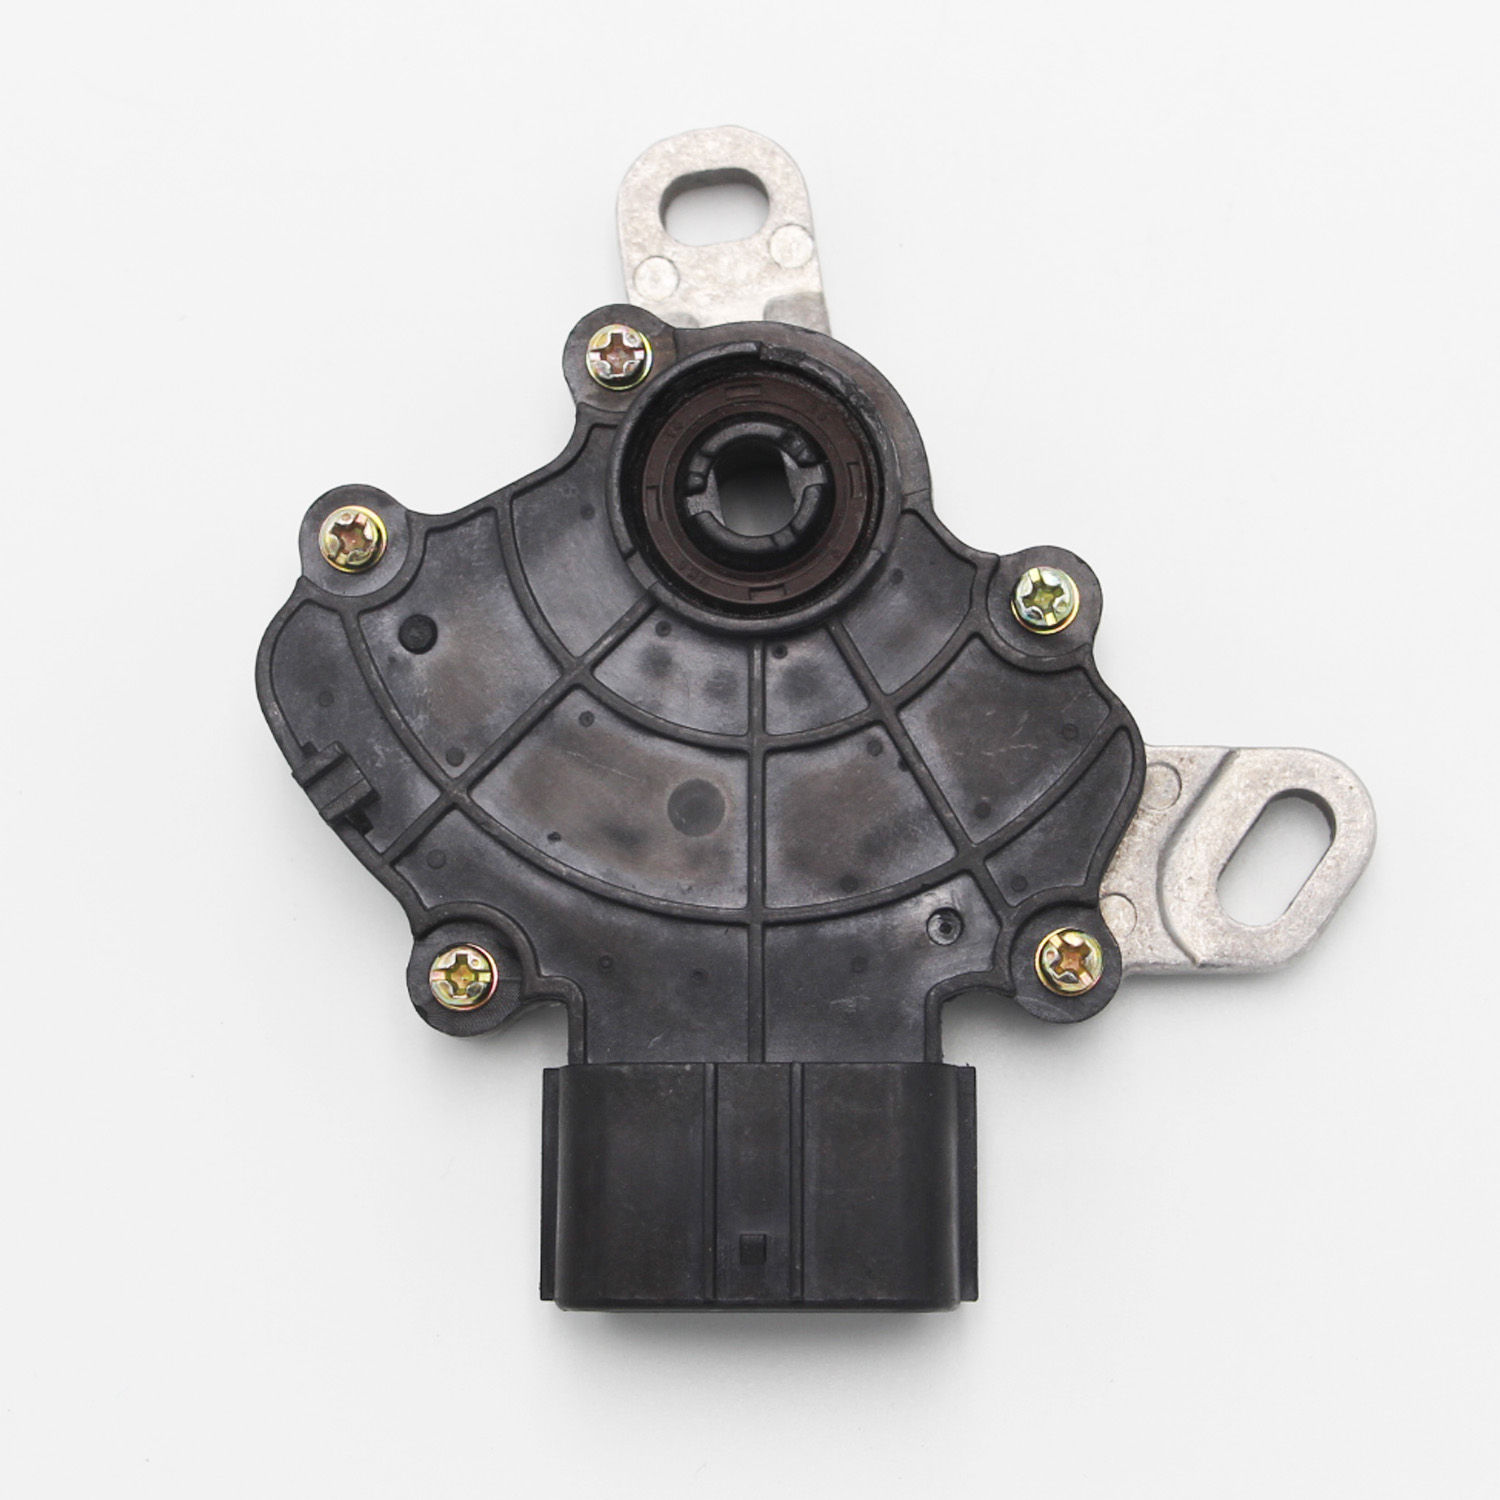 New Neutral Safety Switch For Honda Civic Accord CR-V